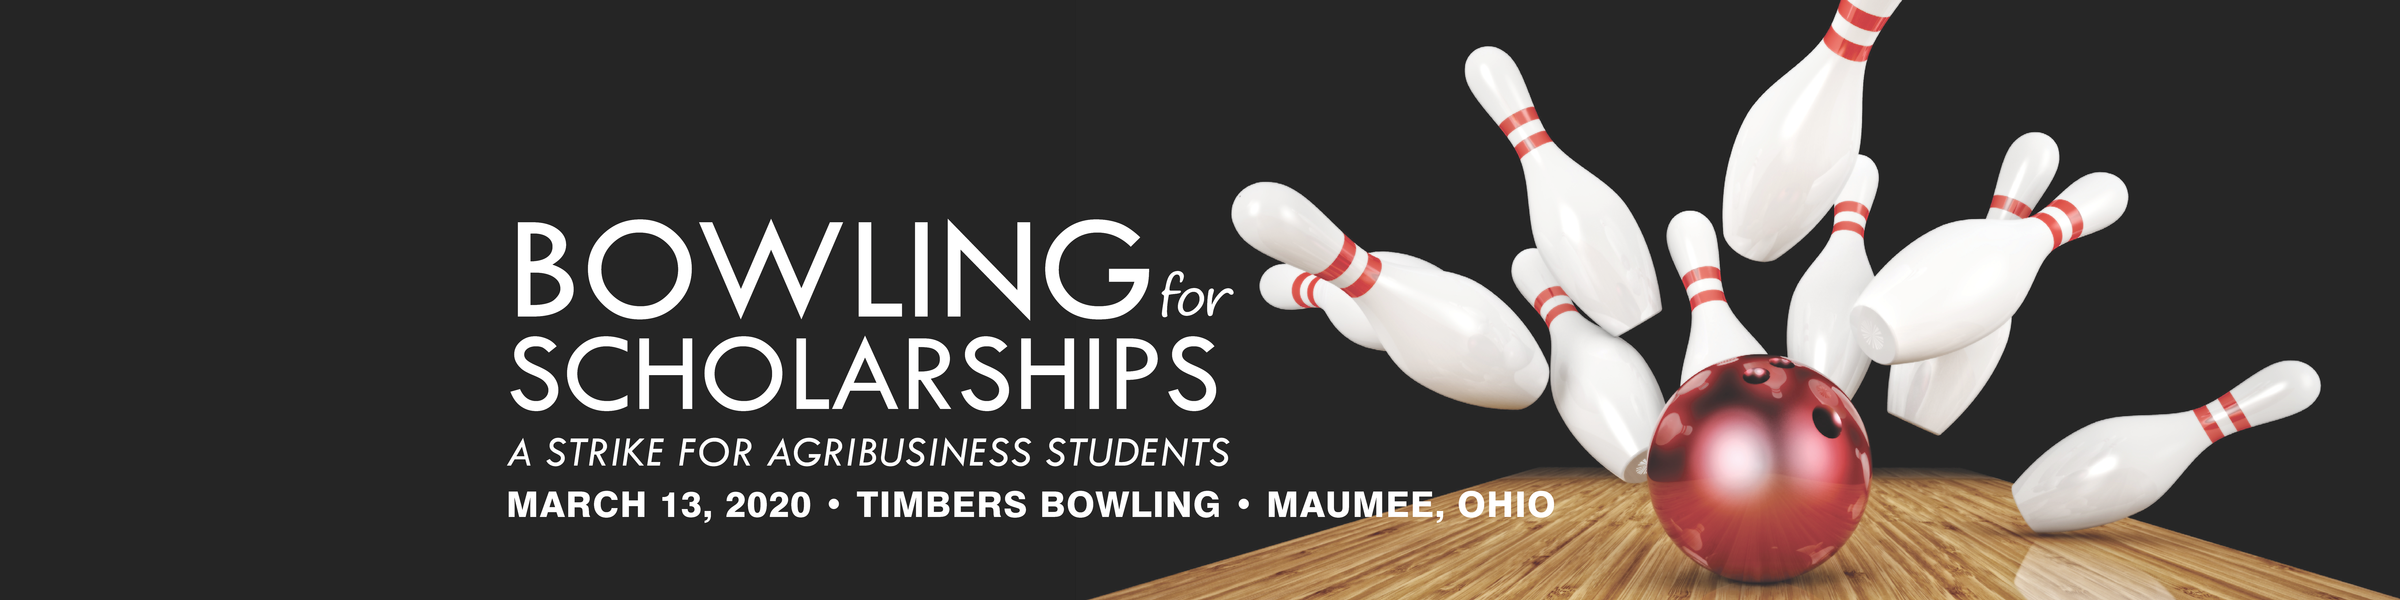 Bowling Website Header 2020